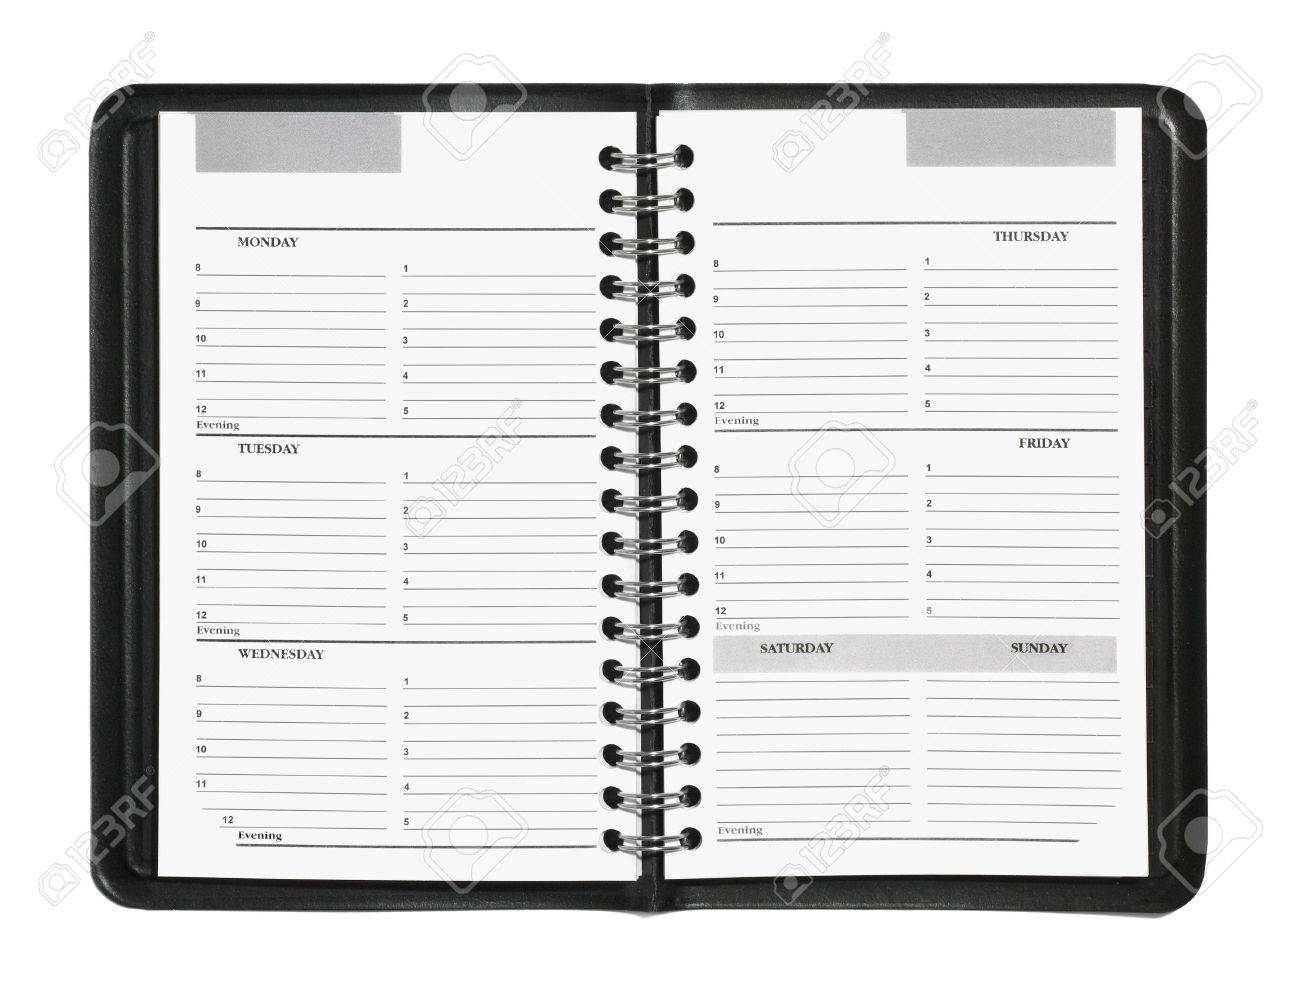 free hourly schedule planner